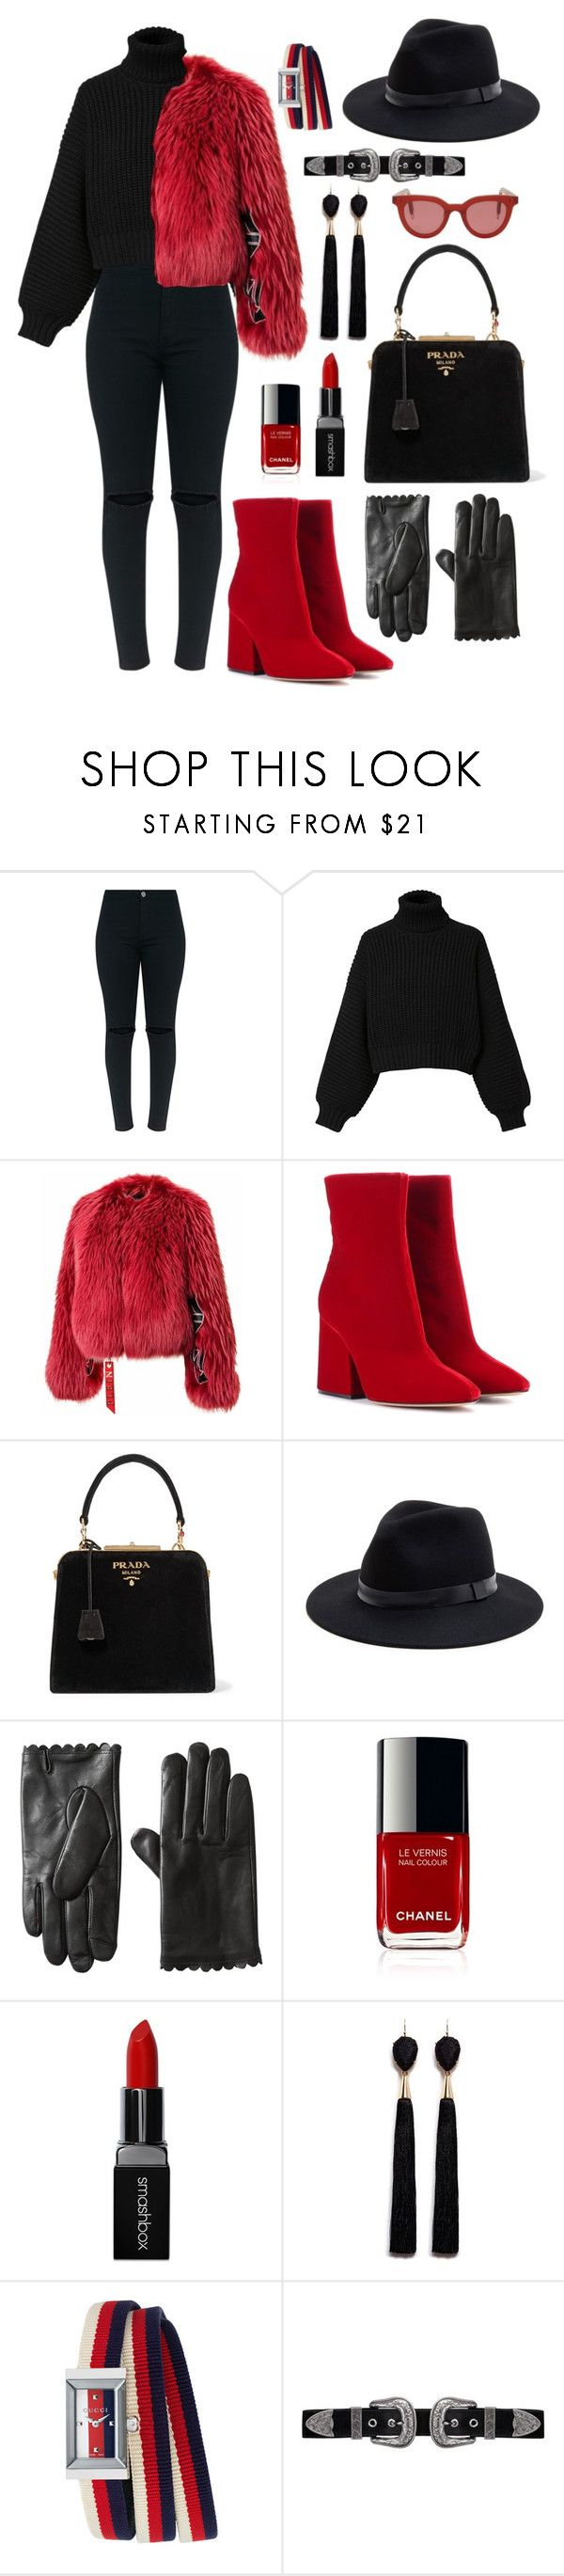 """Red"" by annarita-fanelli ❤ liked on Polyvore featuring Diesel, Maison Margiela, Prada, Sole Society, Smashbox, Mignonne Gavigan, Gucci, B-Low the Belt and Gentle Monster"